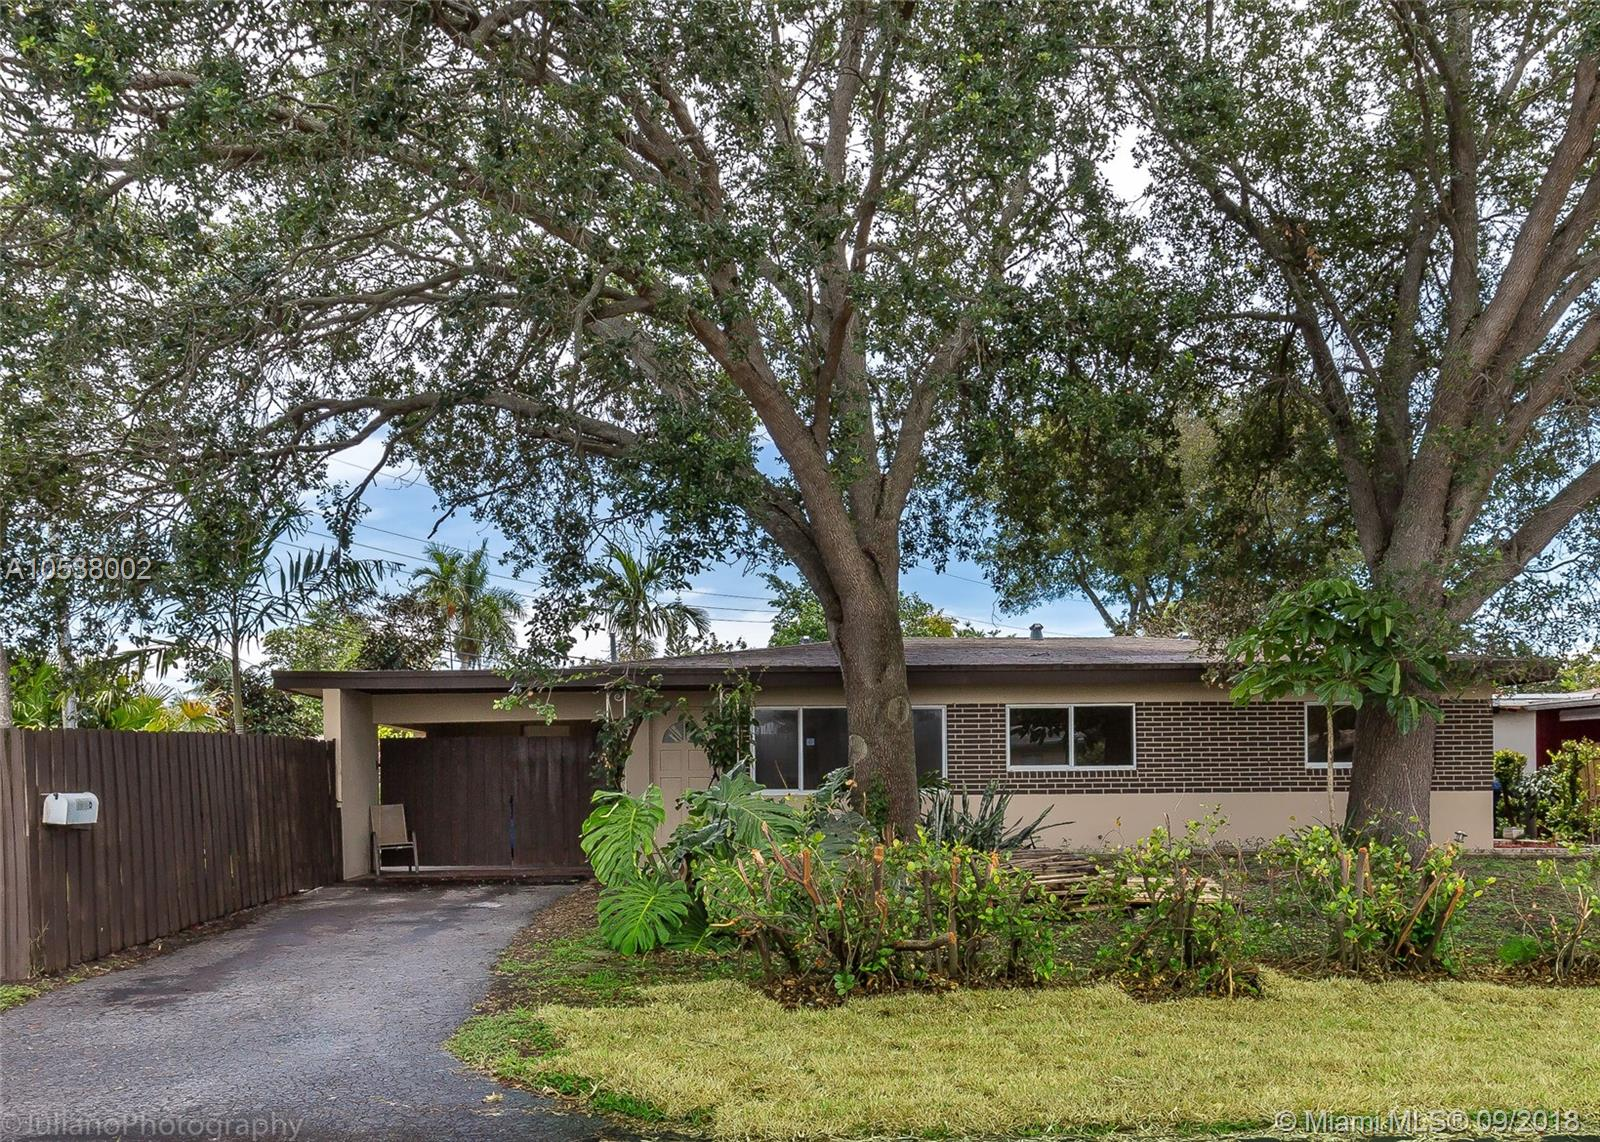 BEAUTIFUL REMODELED 3/2 SINGLE + DEN FAMILY HOME IN WILTON MANORS. CHARMING GARDEN WITH ROOM FOR POOL. BIG DEN CAN BE CONVERTED IN ANOTHER BEDROOM. A MUST SEE, HOUSE WITH A LOT POTENTIAL ON A NOT TRAFFIC STREET.